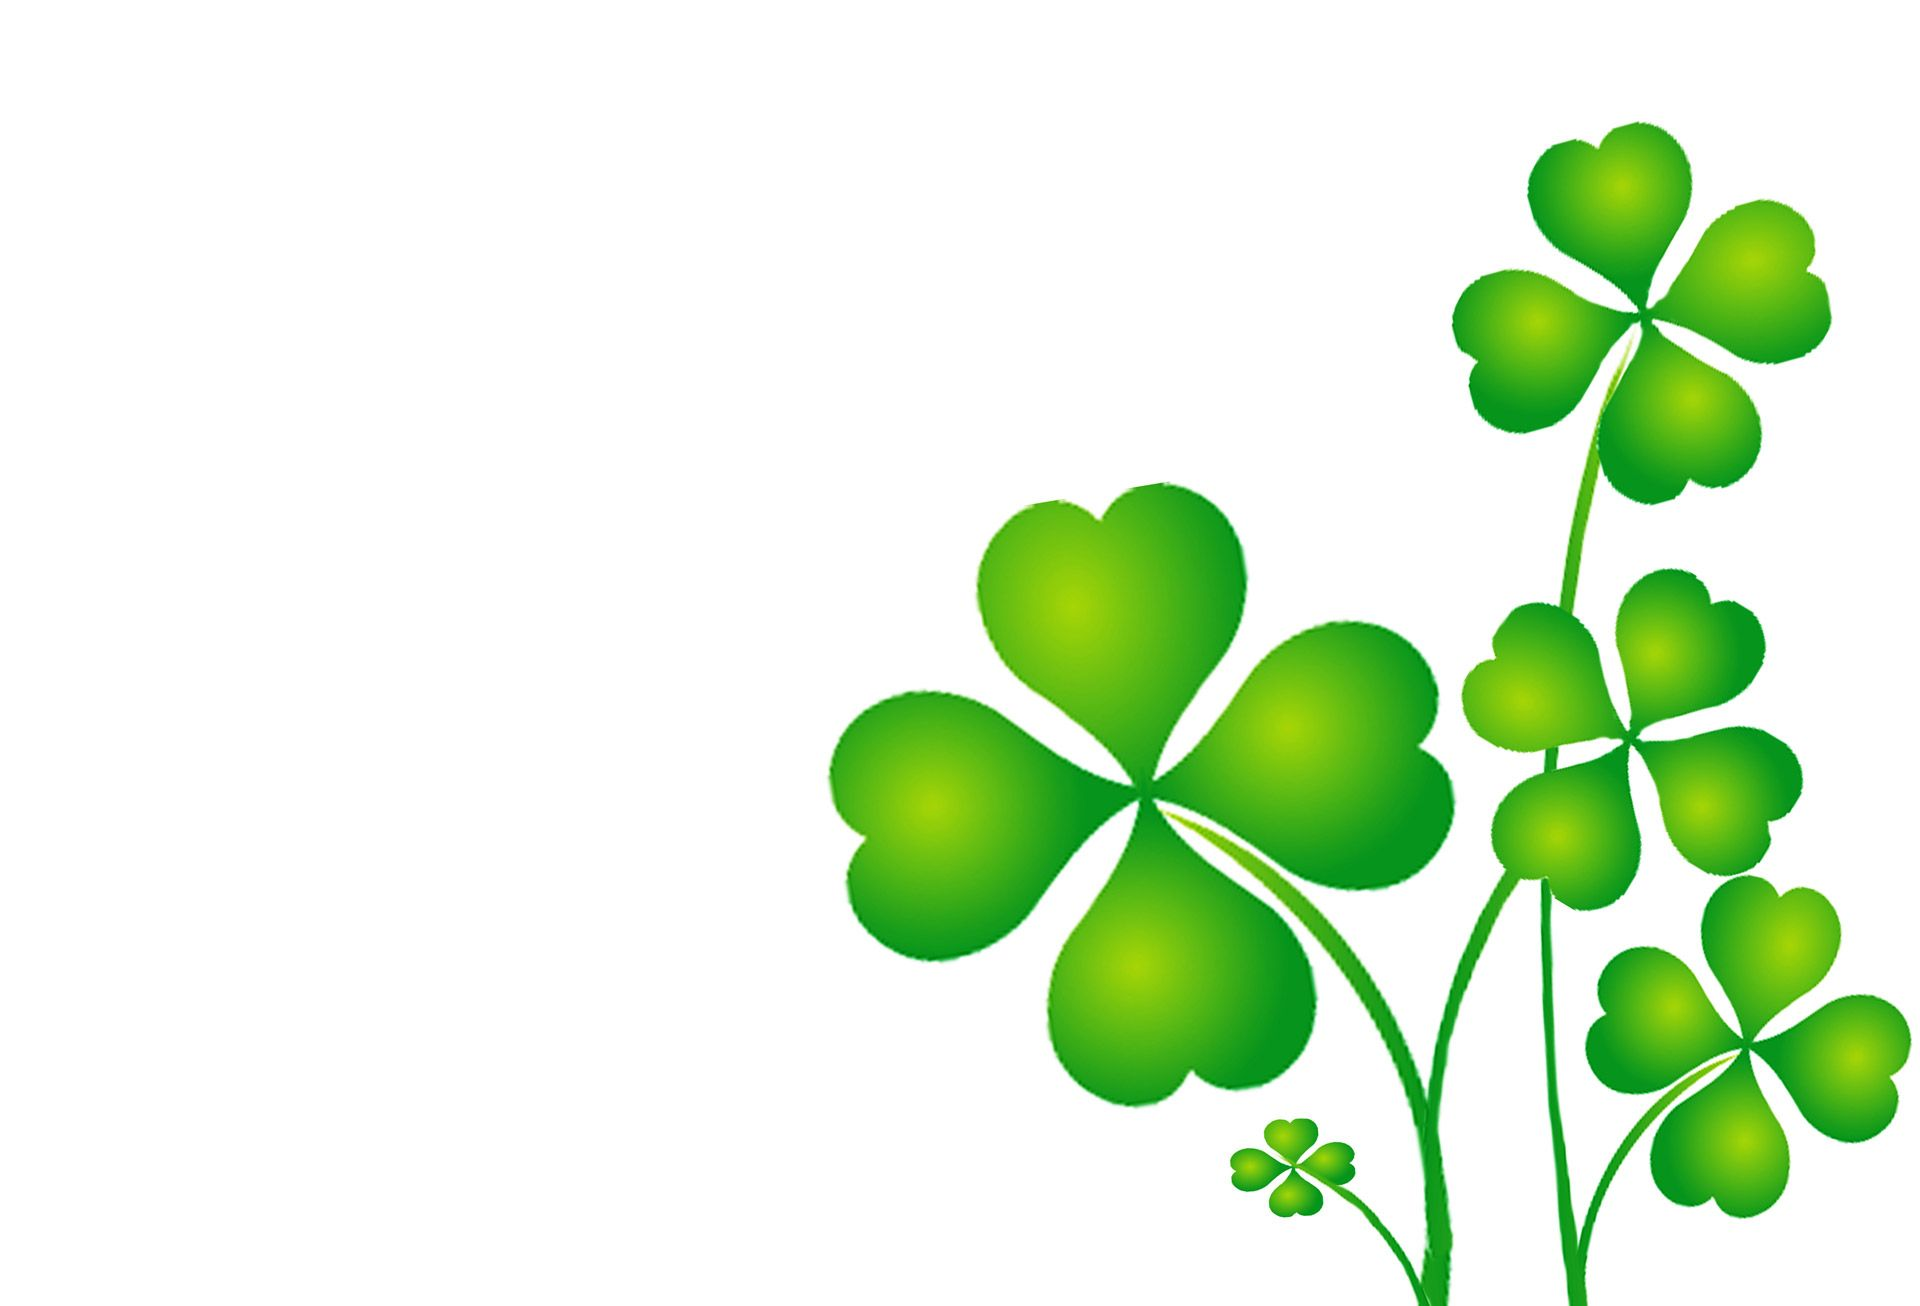 It is a graphic of Eloquent St Patrick's Day Clover Printable